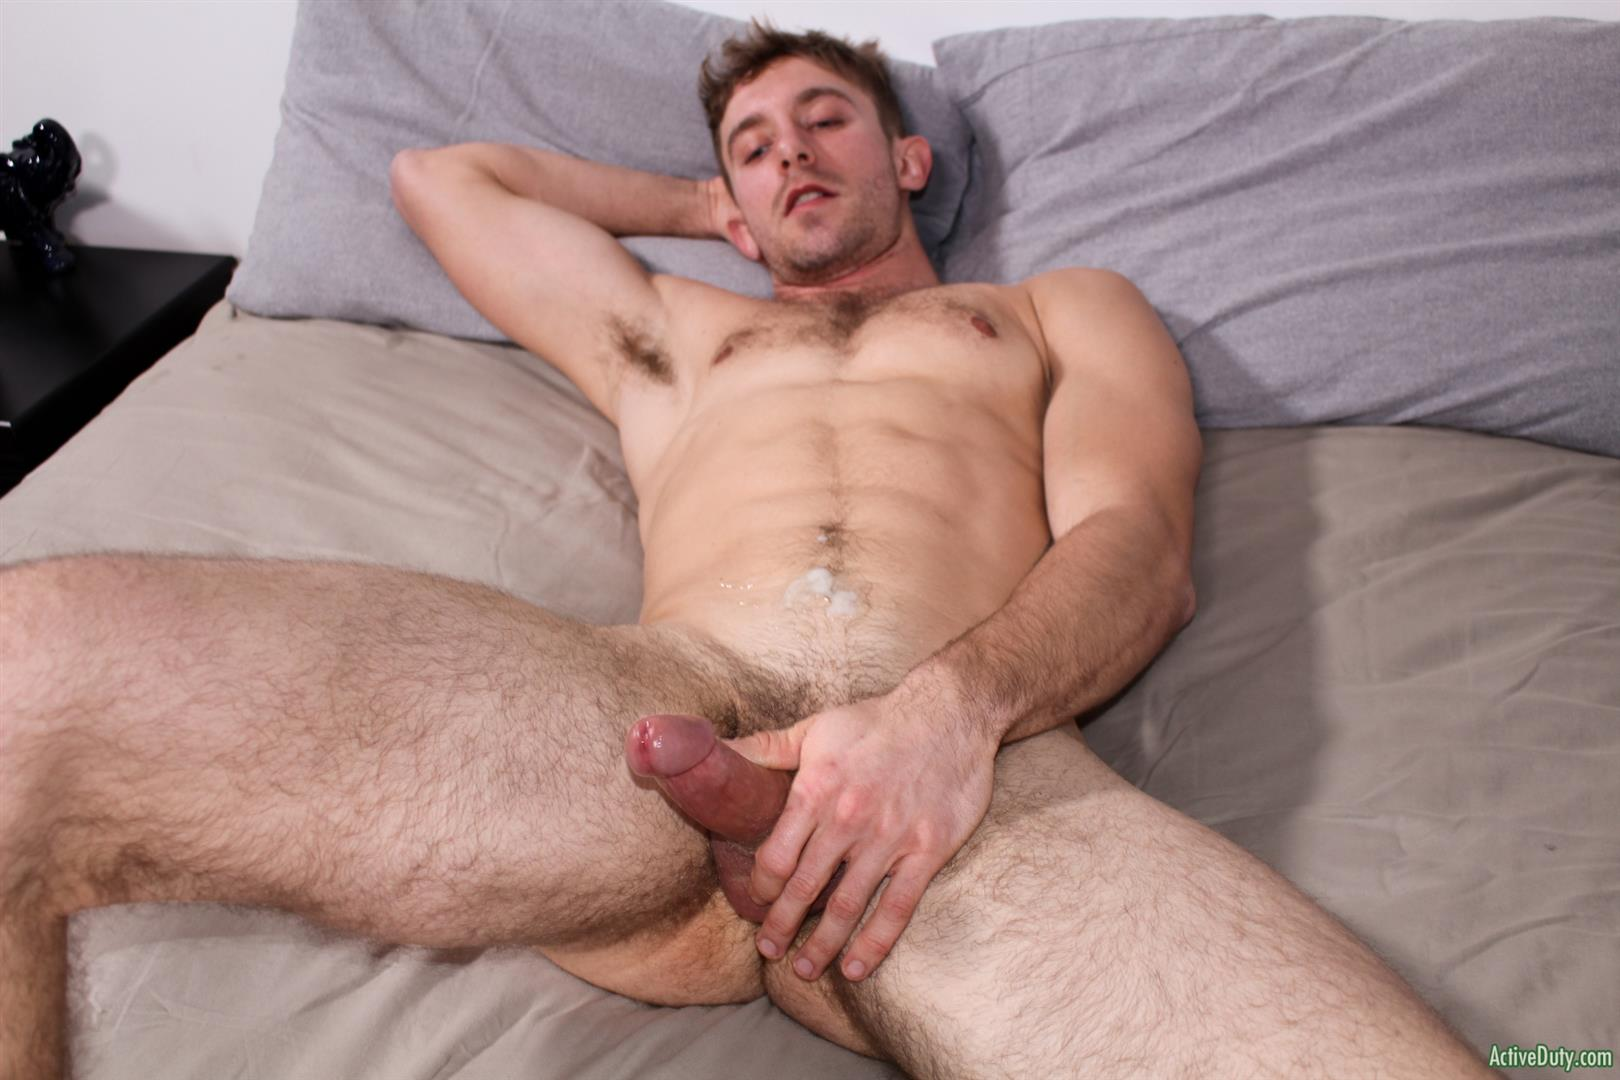 Active-Duty-and-Tyler-Love-and-Ryan-V-Naked-Marine-Buddys-Bareback-Fucking-Gay-Sex15 Straight Marine Buddies Like To Secretly Have Bareback Sex